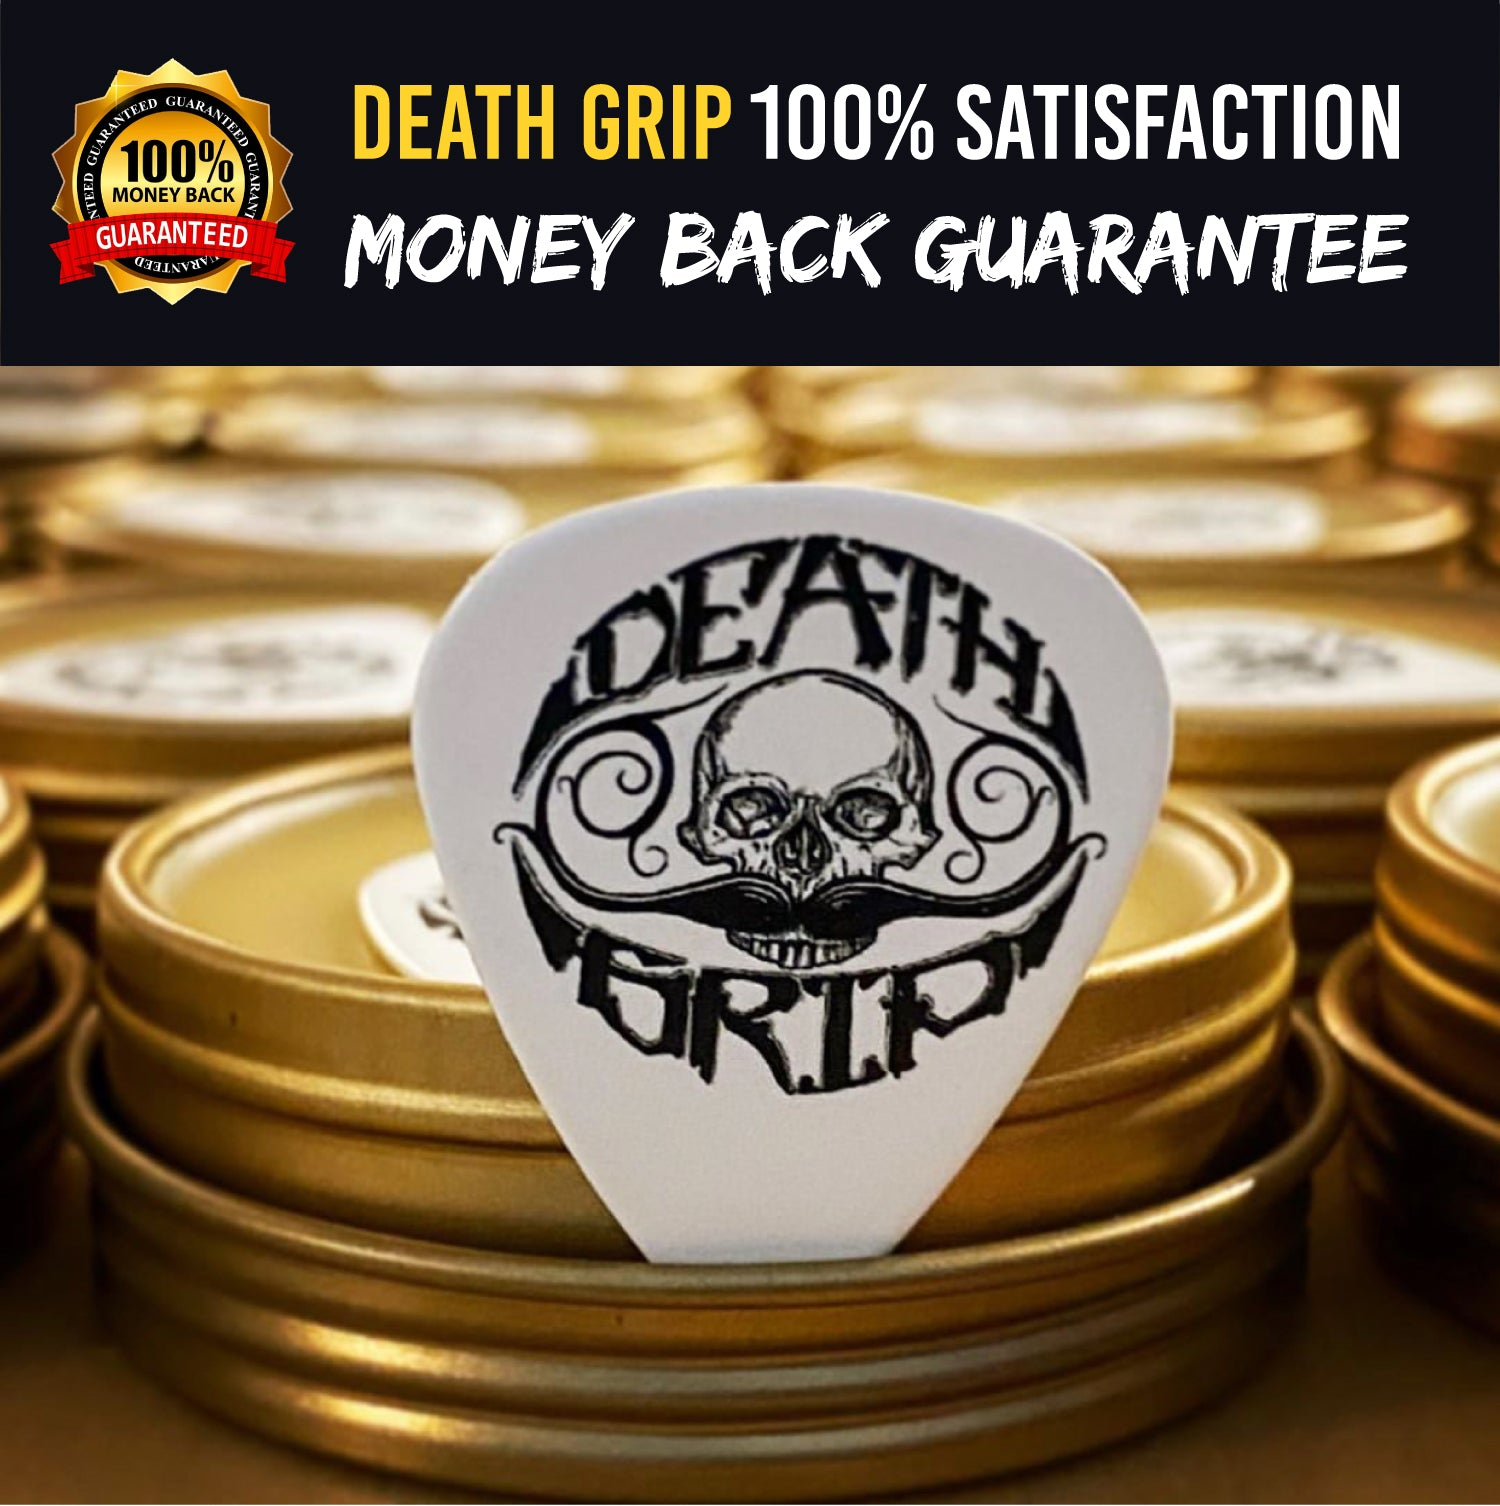 Best Mustache Wax (moustache) by Death Grip - extra strong mustash wax holds all day - perfect for men grooming white brown black or grey handlebar mustaches (1ounce) 100% all-natural no fragrance added